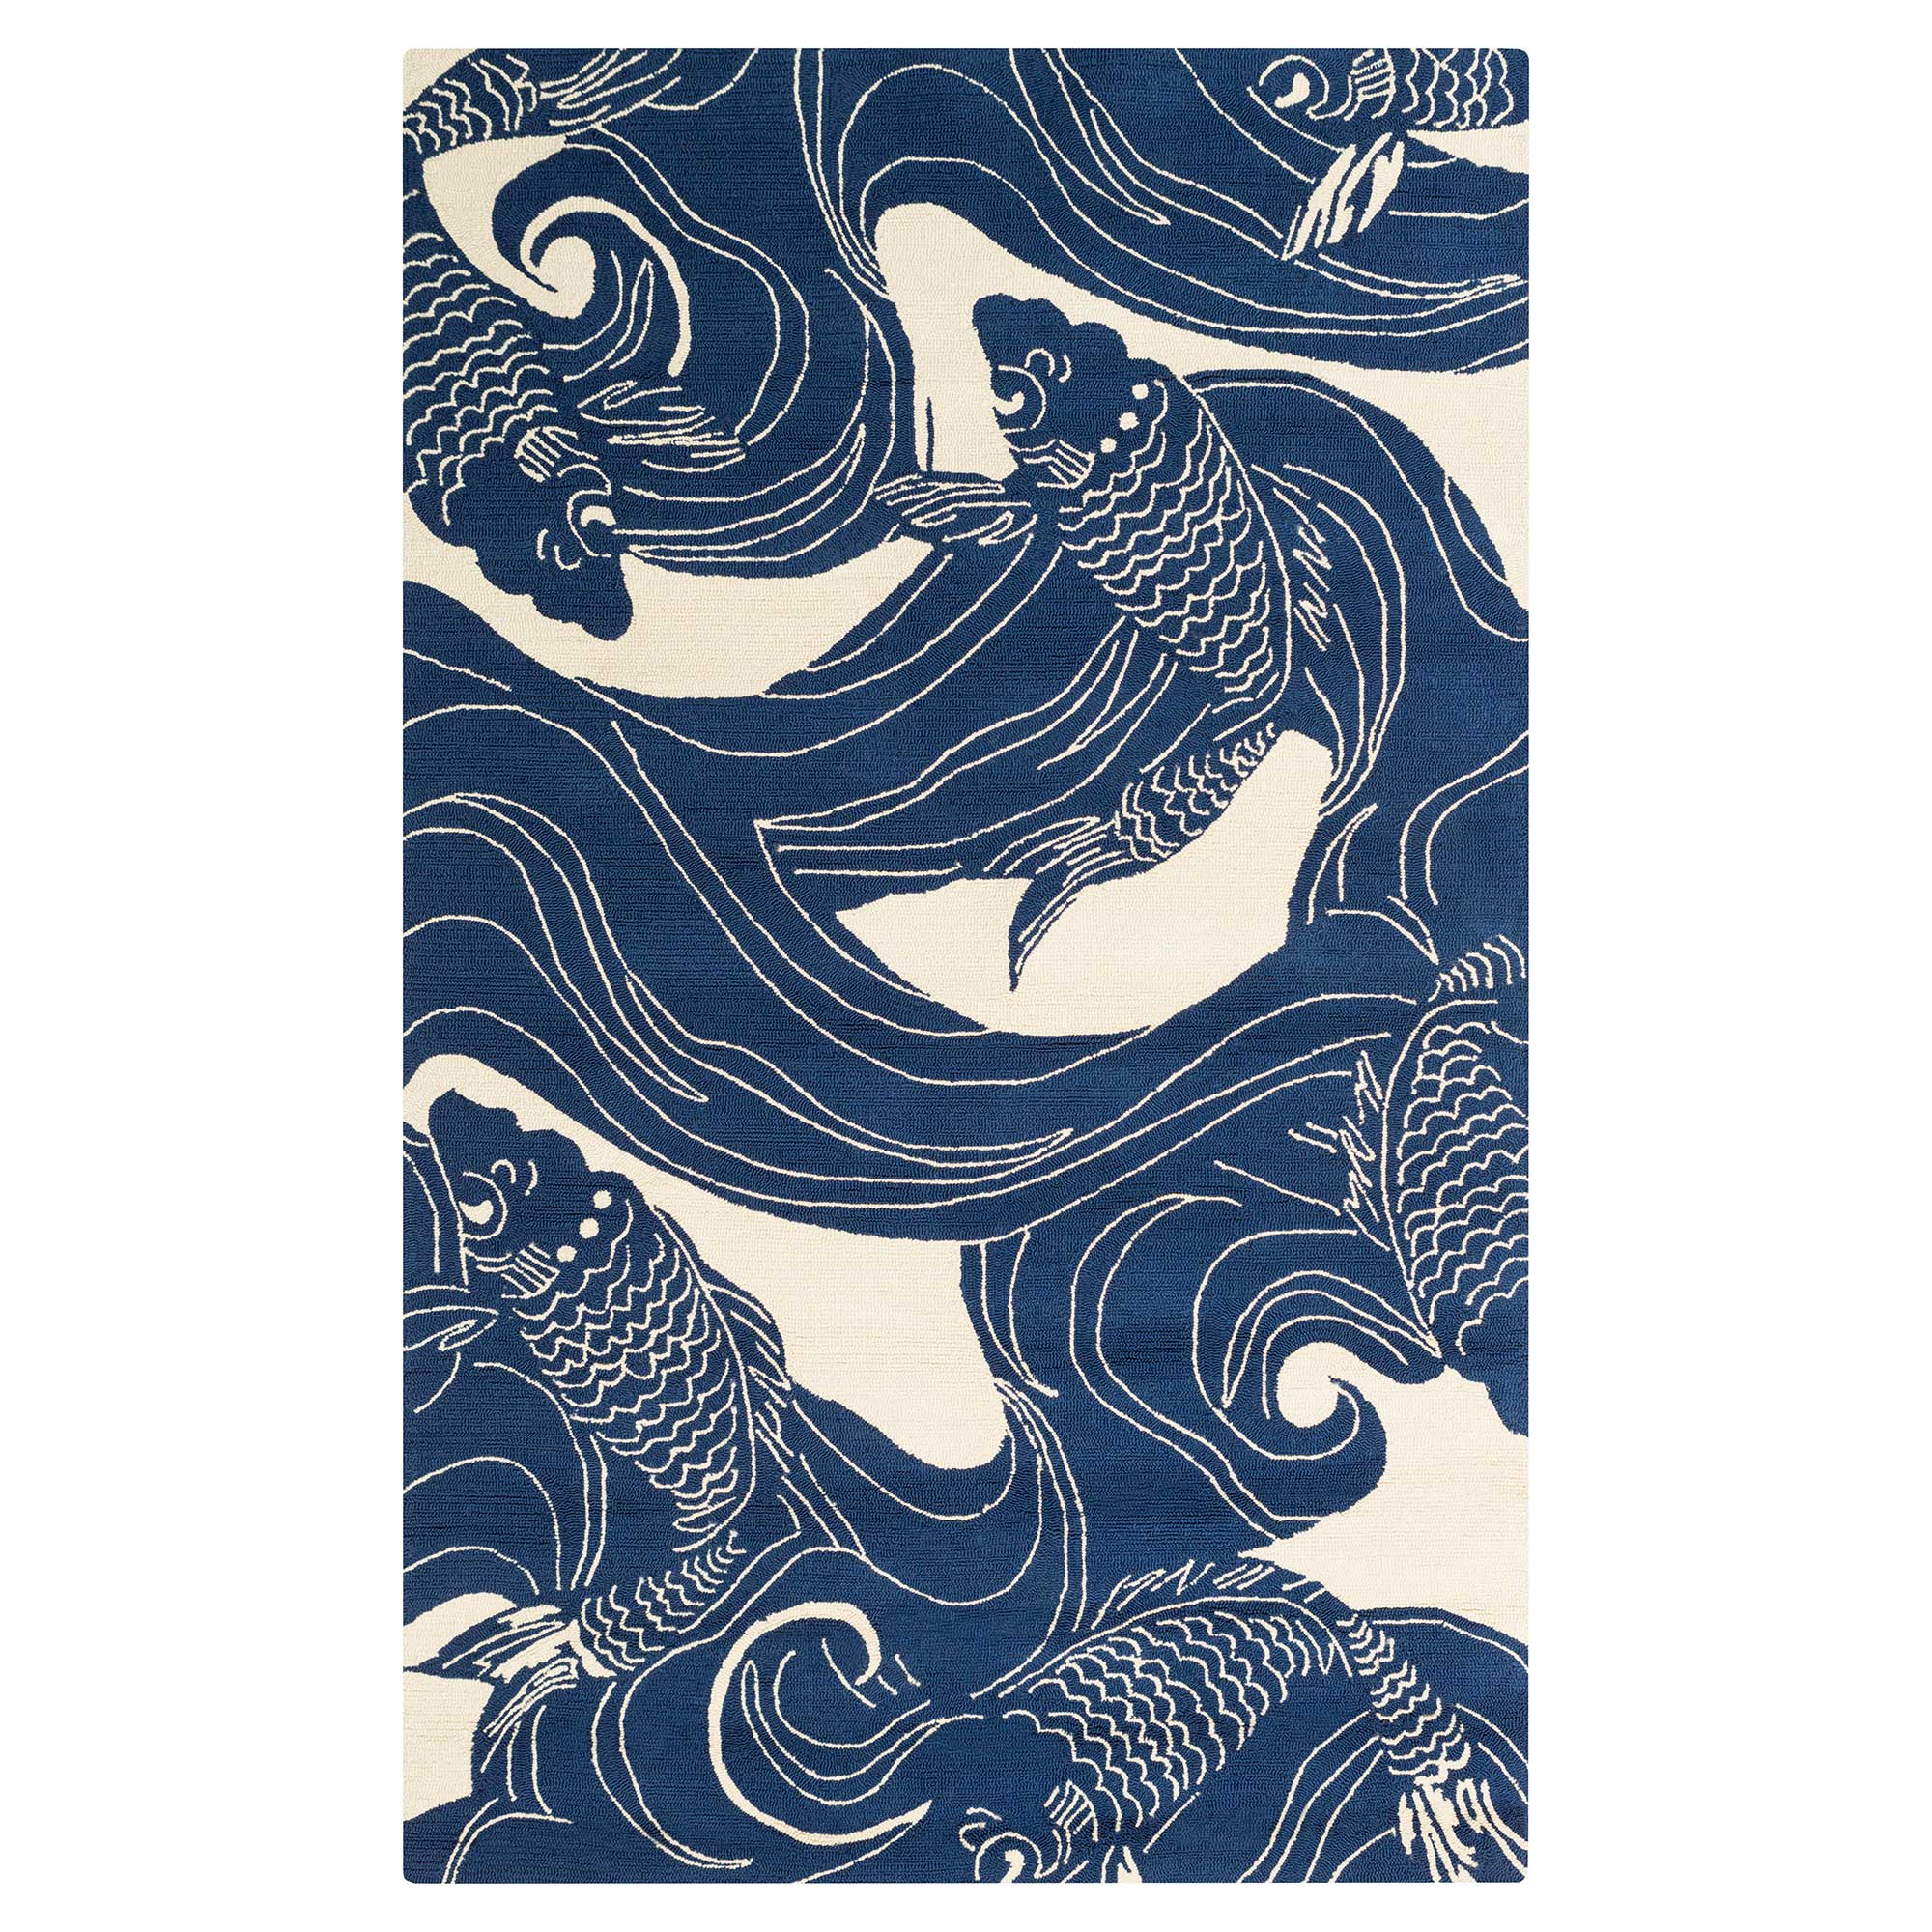 Kana Global Coastal Blue Ocean Koi Outdoor Rug - 8'x10'